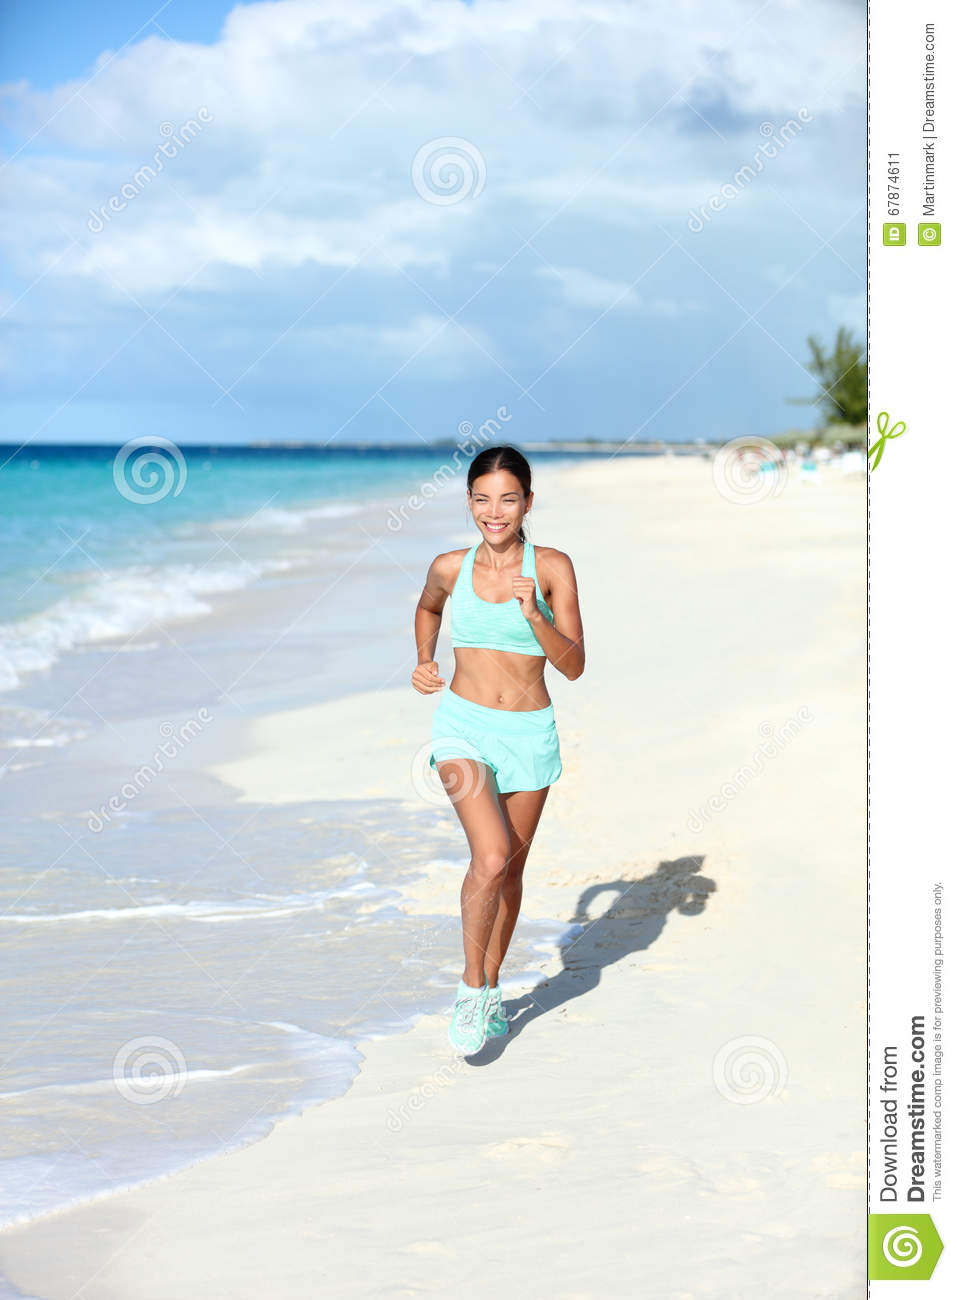 Happy jogging woman running on sunny beach living a fit life stock download comp publicscrutiny Choice Image